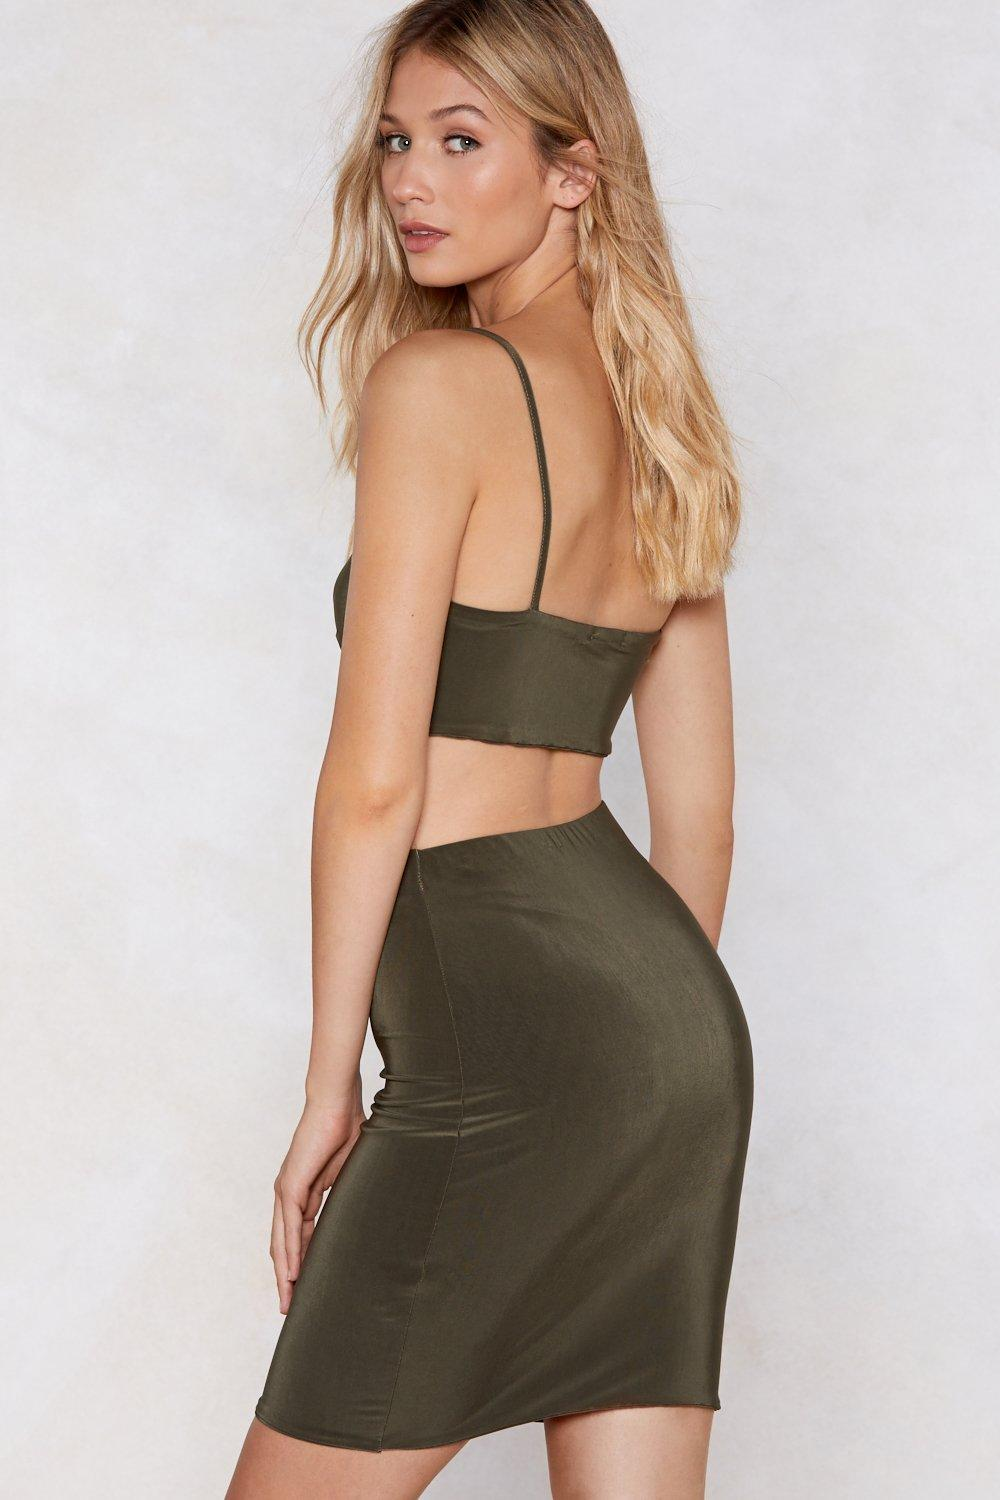 1dff37477 Take Two Crop Top and Skirt Set   Shop Clothes at Nasty Gal!